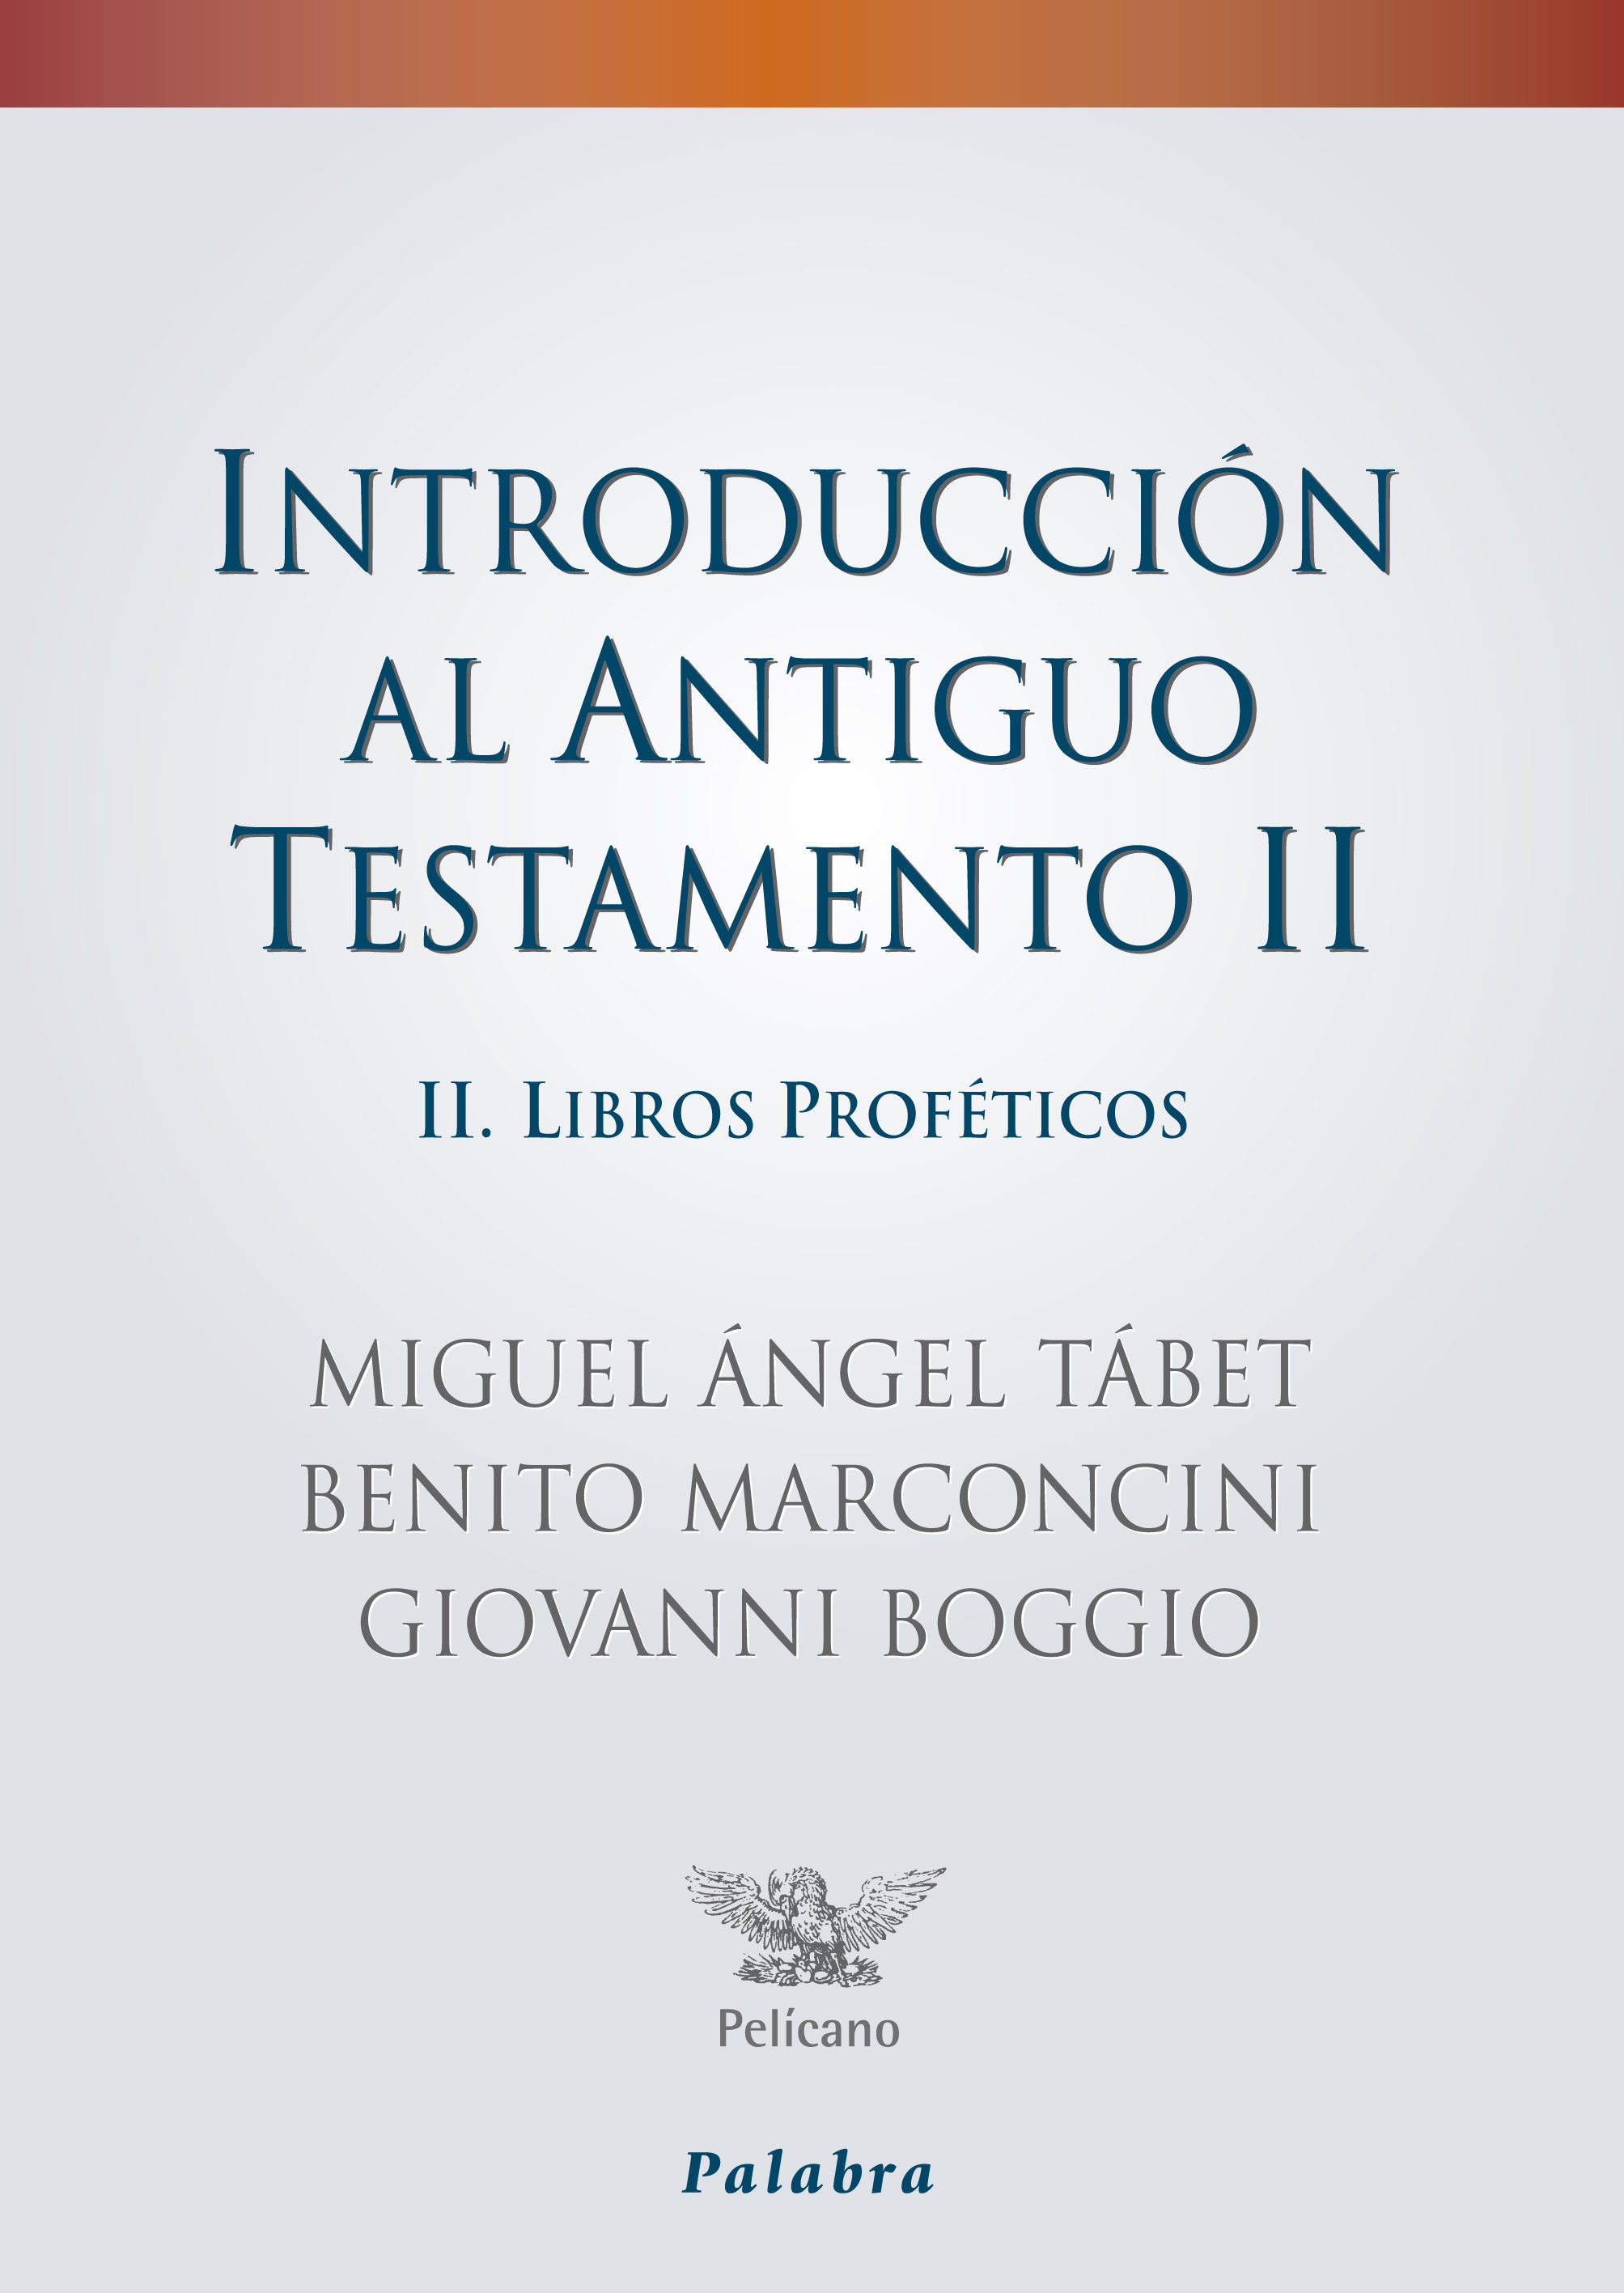 Introduccion A La Fisica Libro Introduccion Al Antiguo Testamento Ii Libros Profeticos